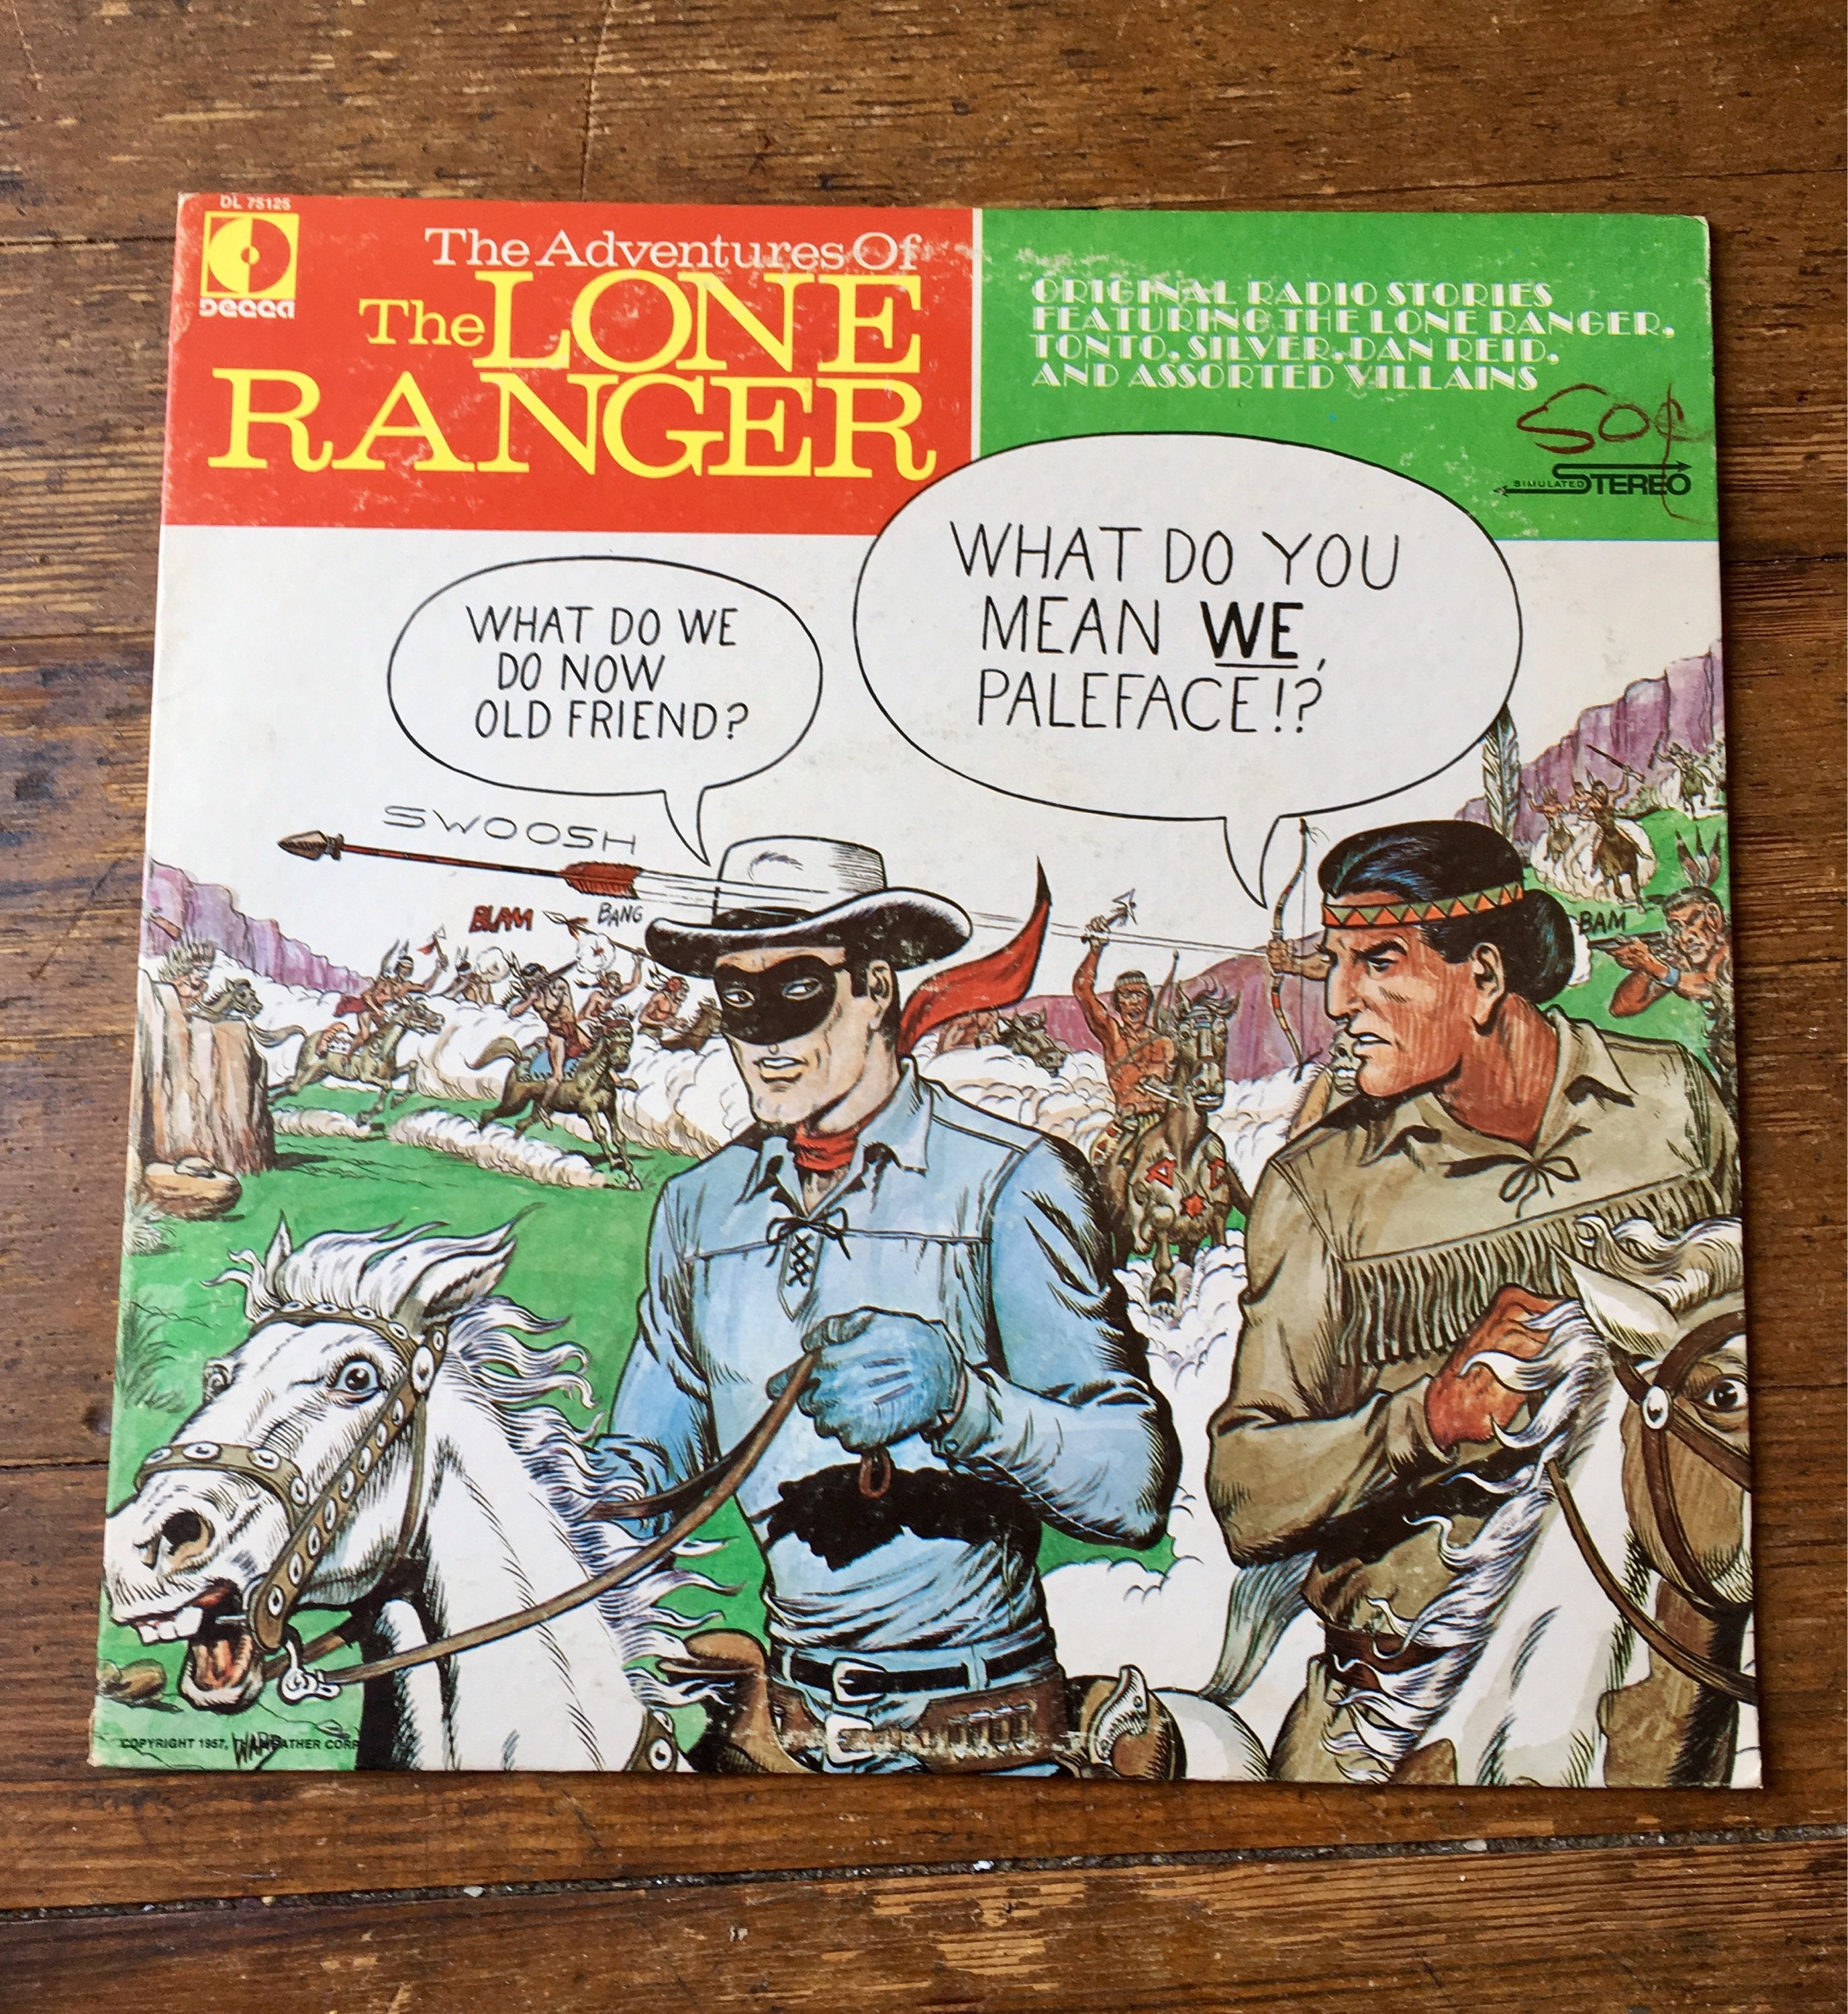 1957 The Adventures of the Lone Ranger Vinyl Record DL 75125  VG